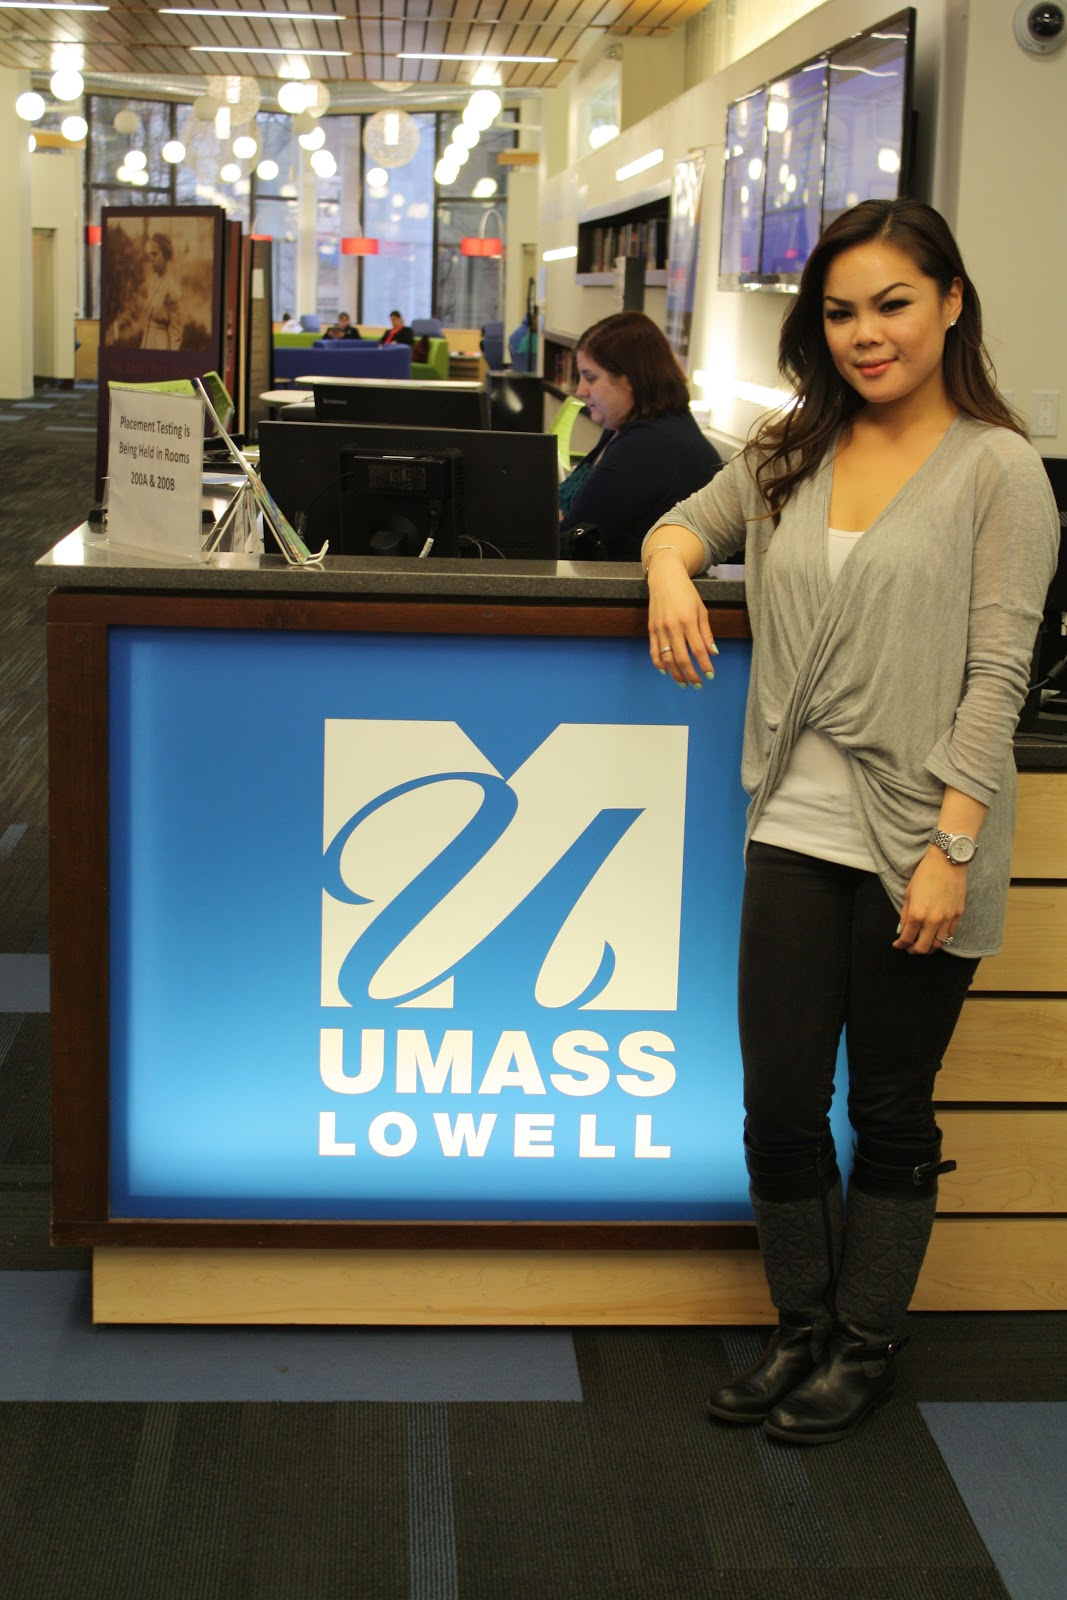 UMass Lowell Students Feed Lowell and the Web